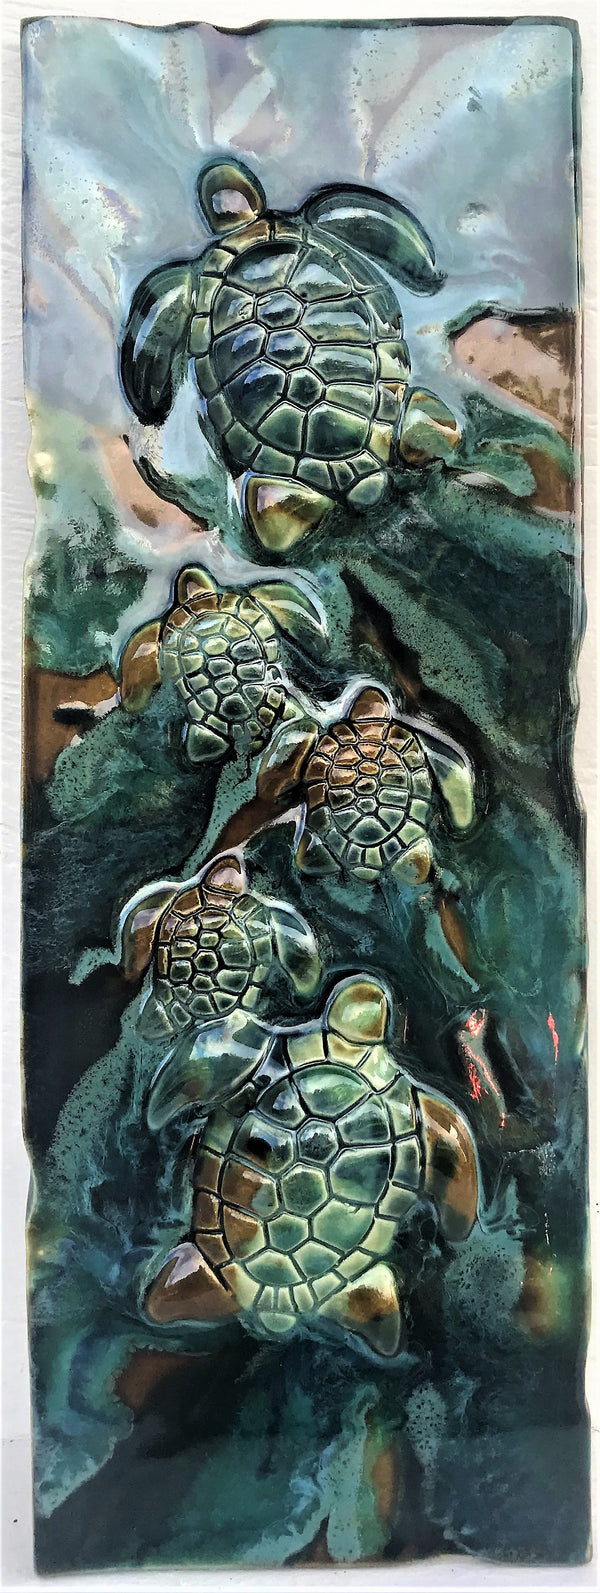 Turtle Wall Hanging, Ceramic Turtle Tile, Kitchen Backsplash with Turtle Relief Design, Turtle Bathroom Tile, Turtle Shower Tile, Turtle Jacuzzi Tile, Wall Tile Turtle, Maui Turtle, Hawaiian Sea Turtle, Green Sea Turtle, and Ocean Turtles, Turtle Décor, Turtle Wall Art, Maui Ceramics,